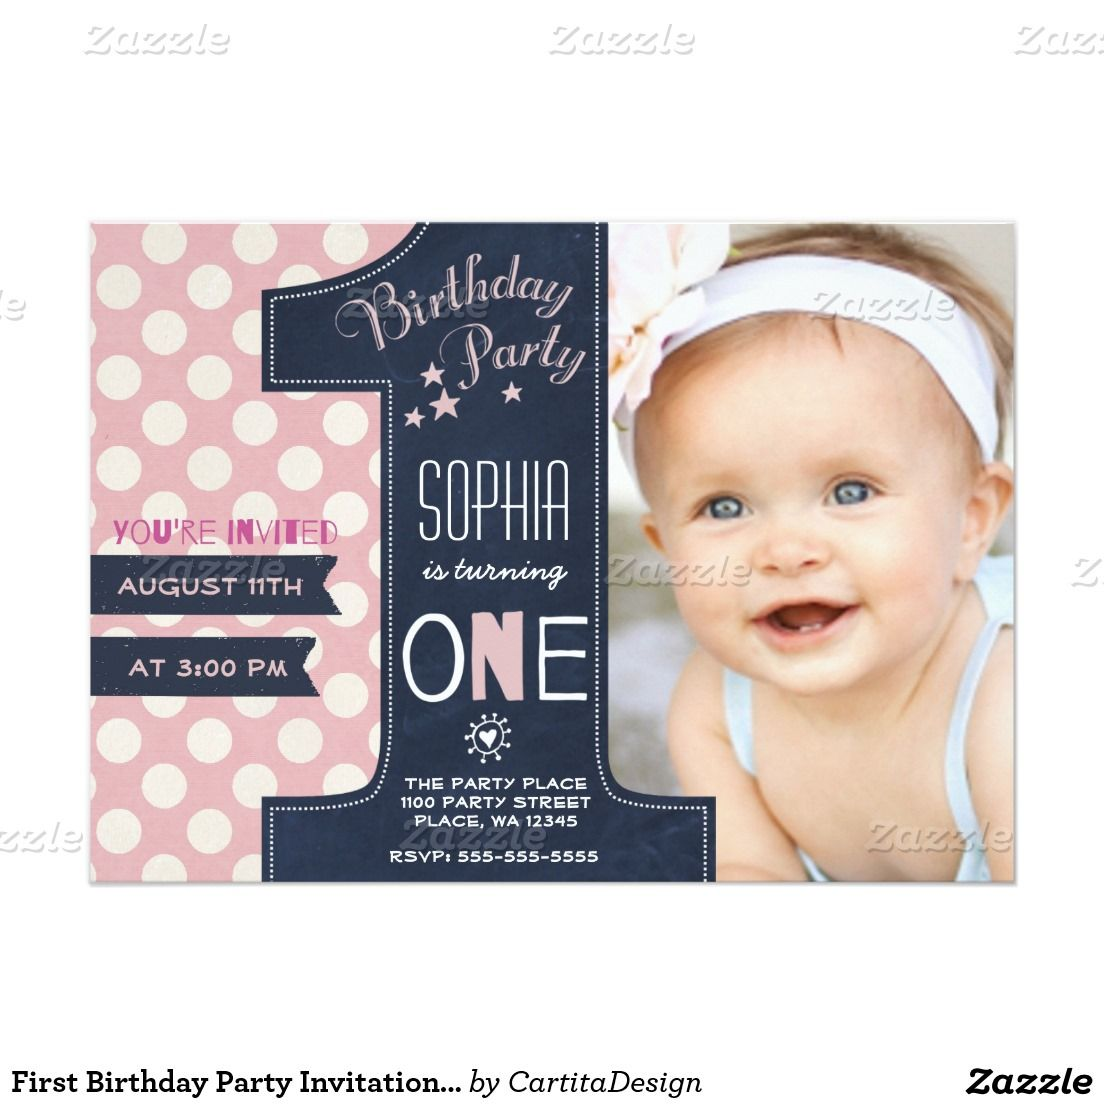 First Birthday Party Invitation Cards